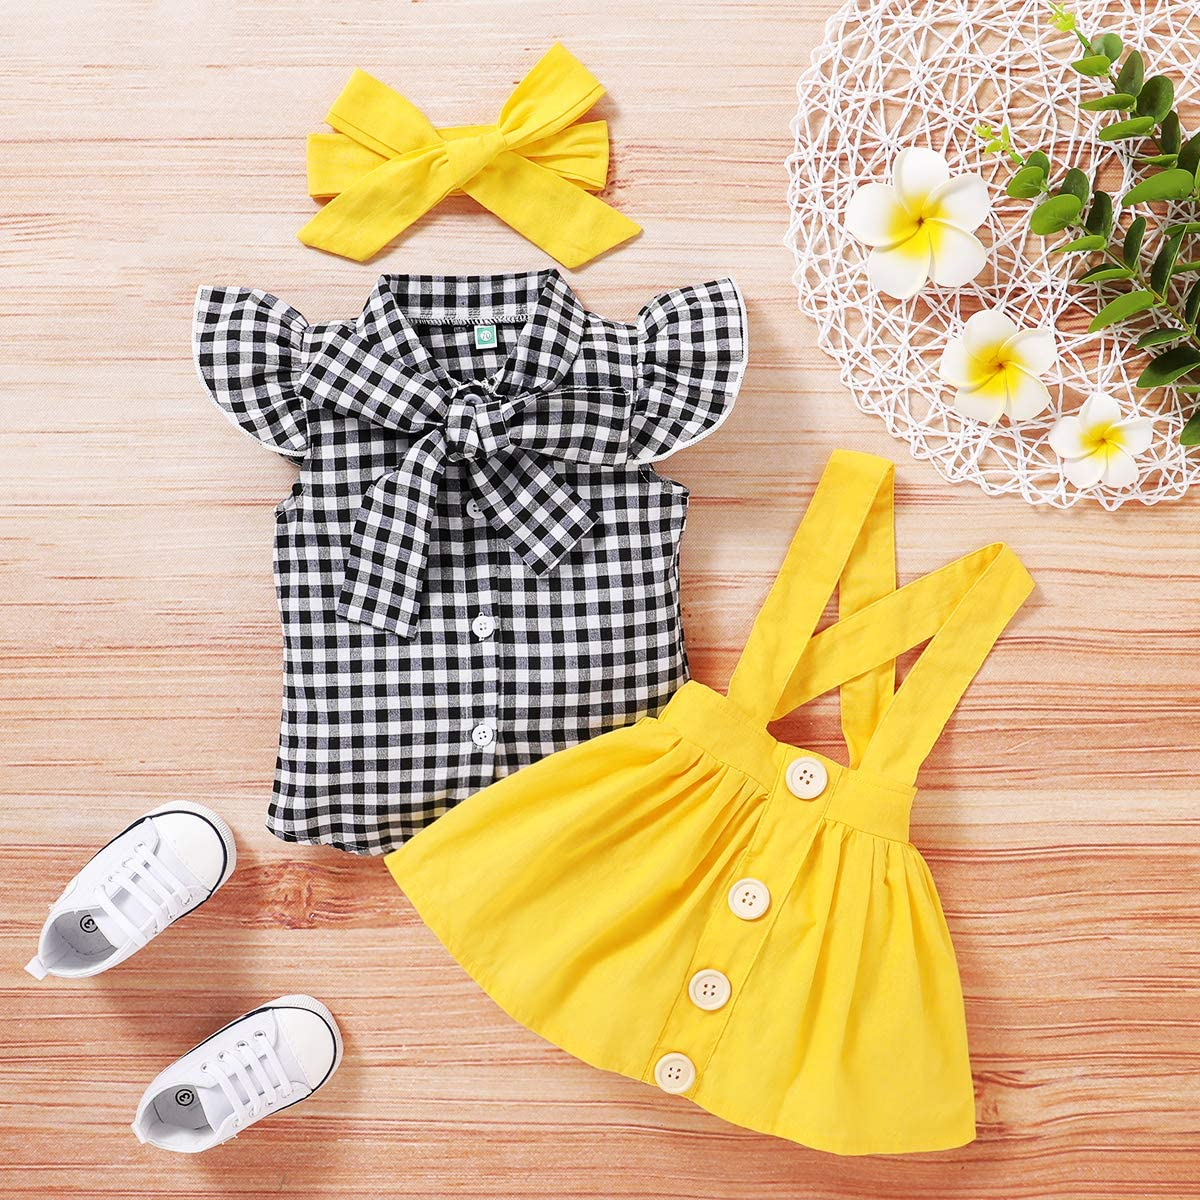 3Pcs Toddler Baby Girls British Style Outfits Clothes Kids Dot Print Tops Blouse Strap Skirt Headbands Set 1-5 T